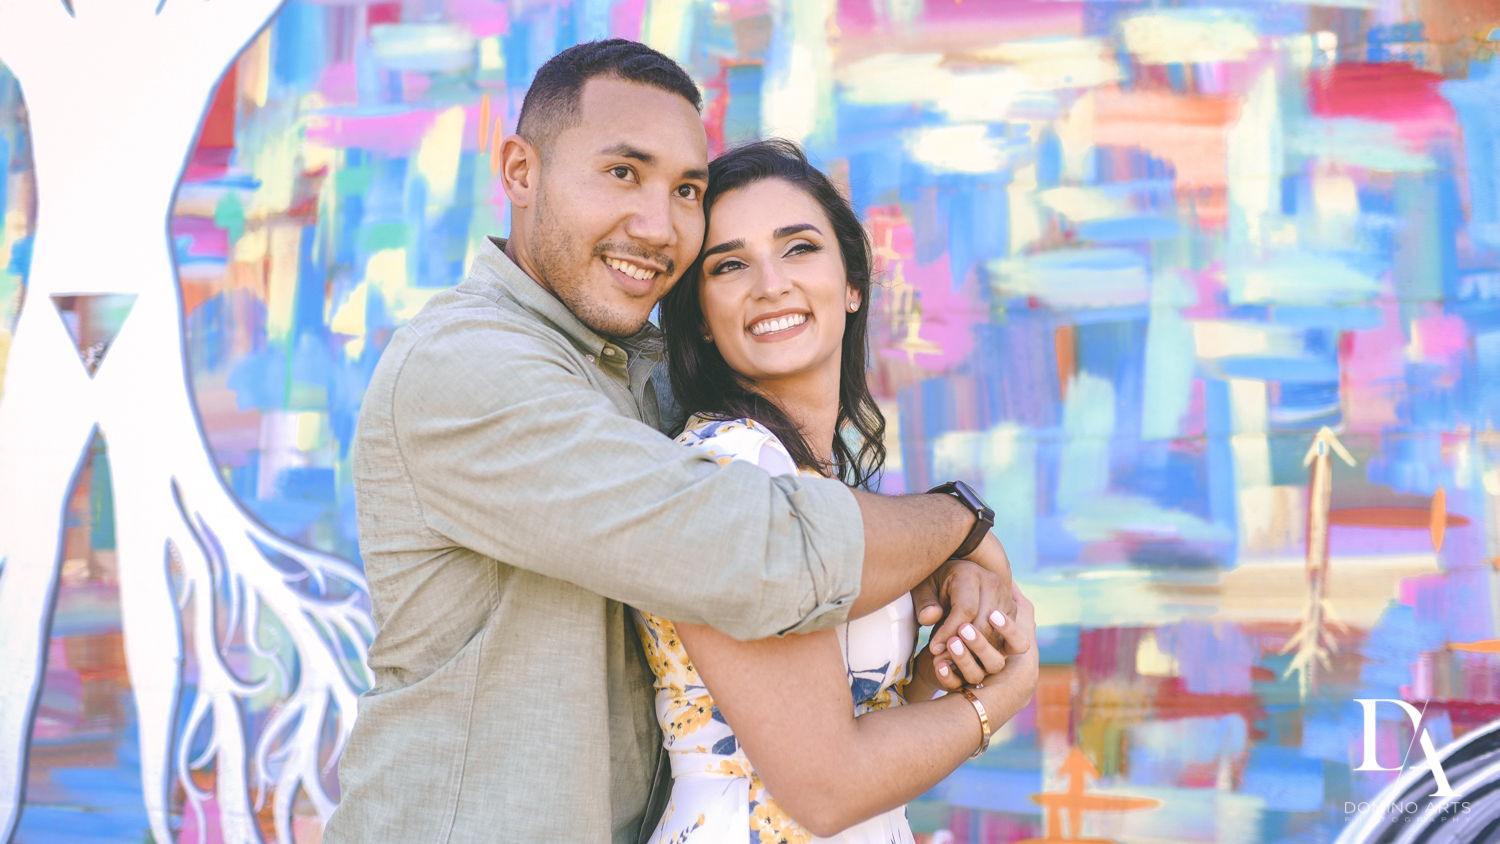 photojournalistic Romantic Engagement Session at Graffiti Walls by Domino Arts Photography